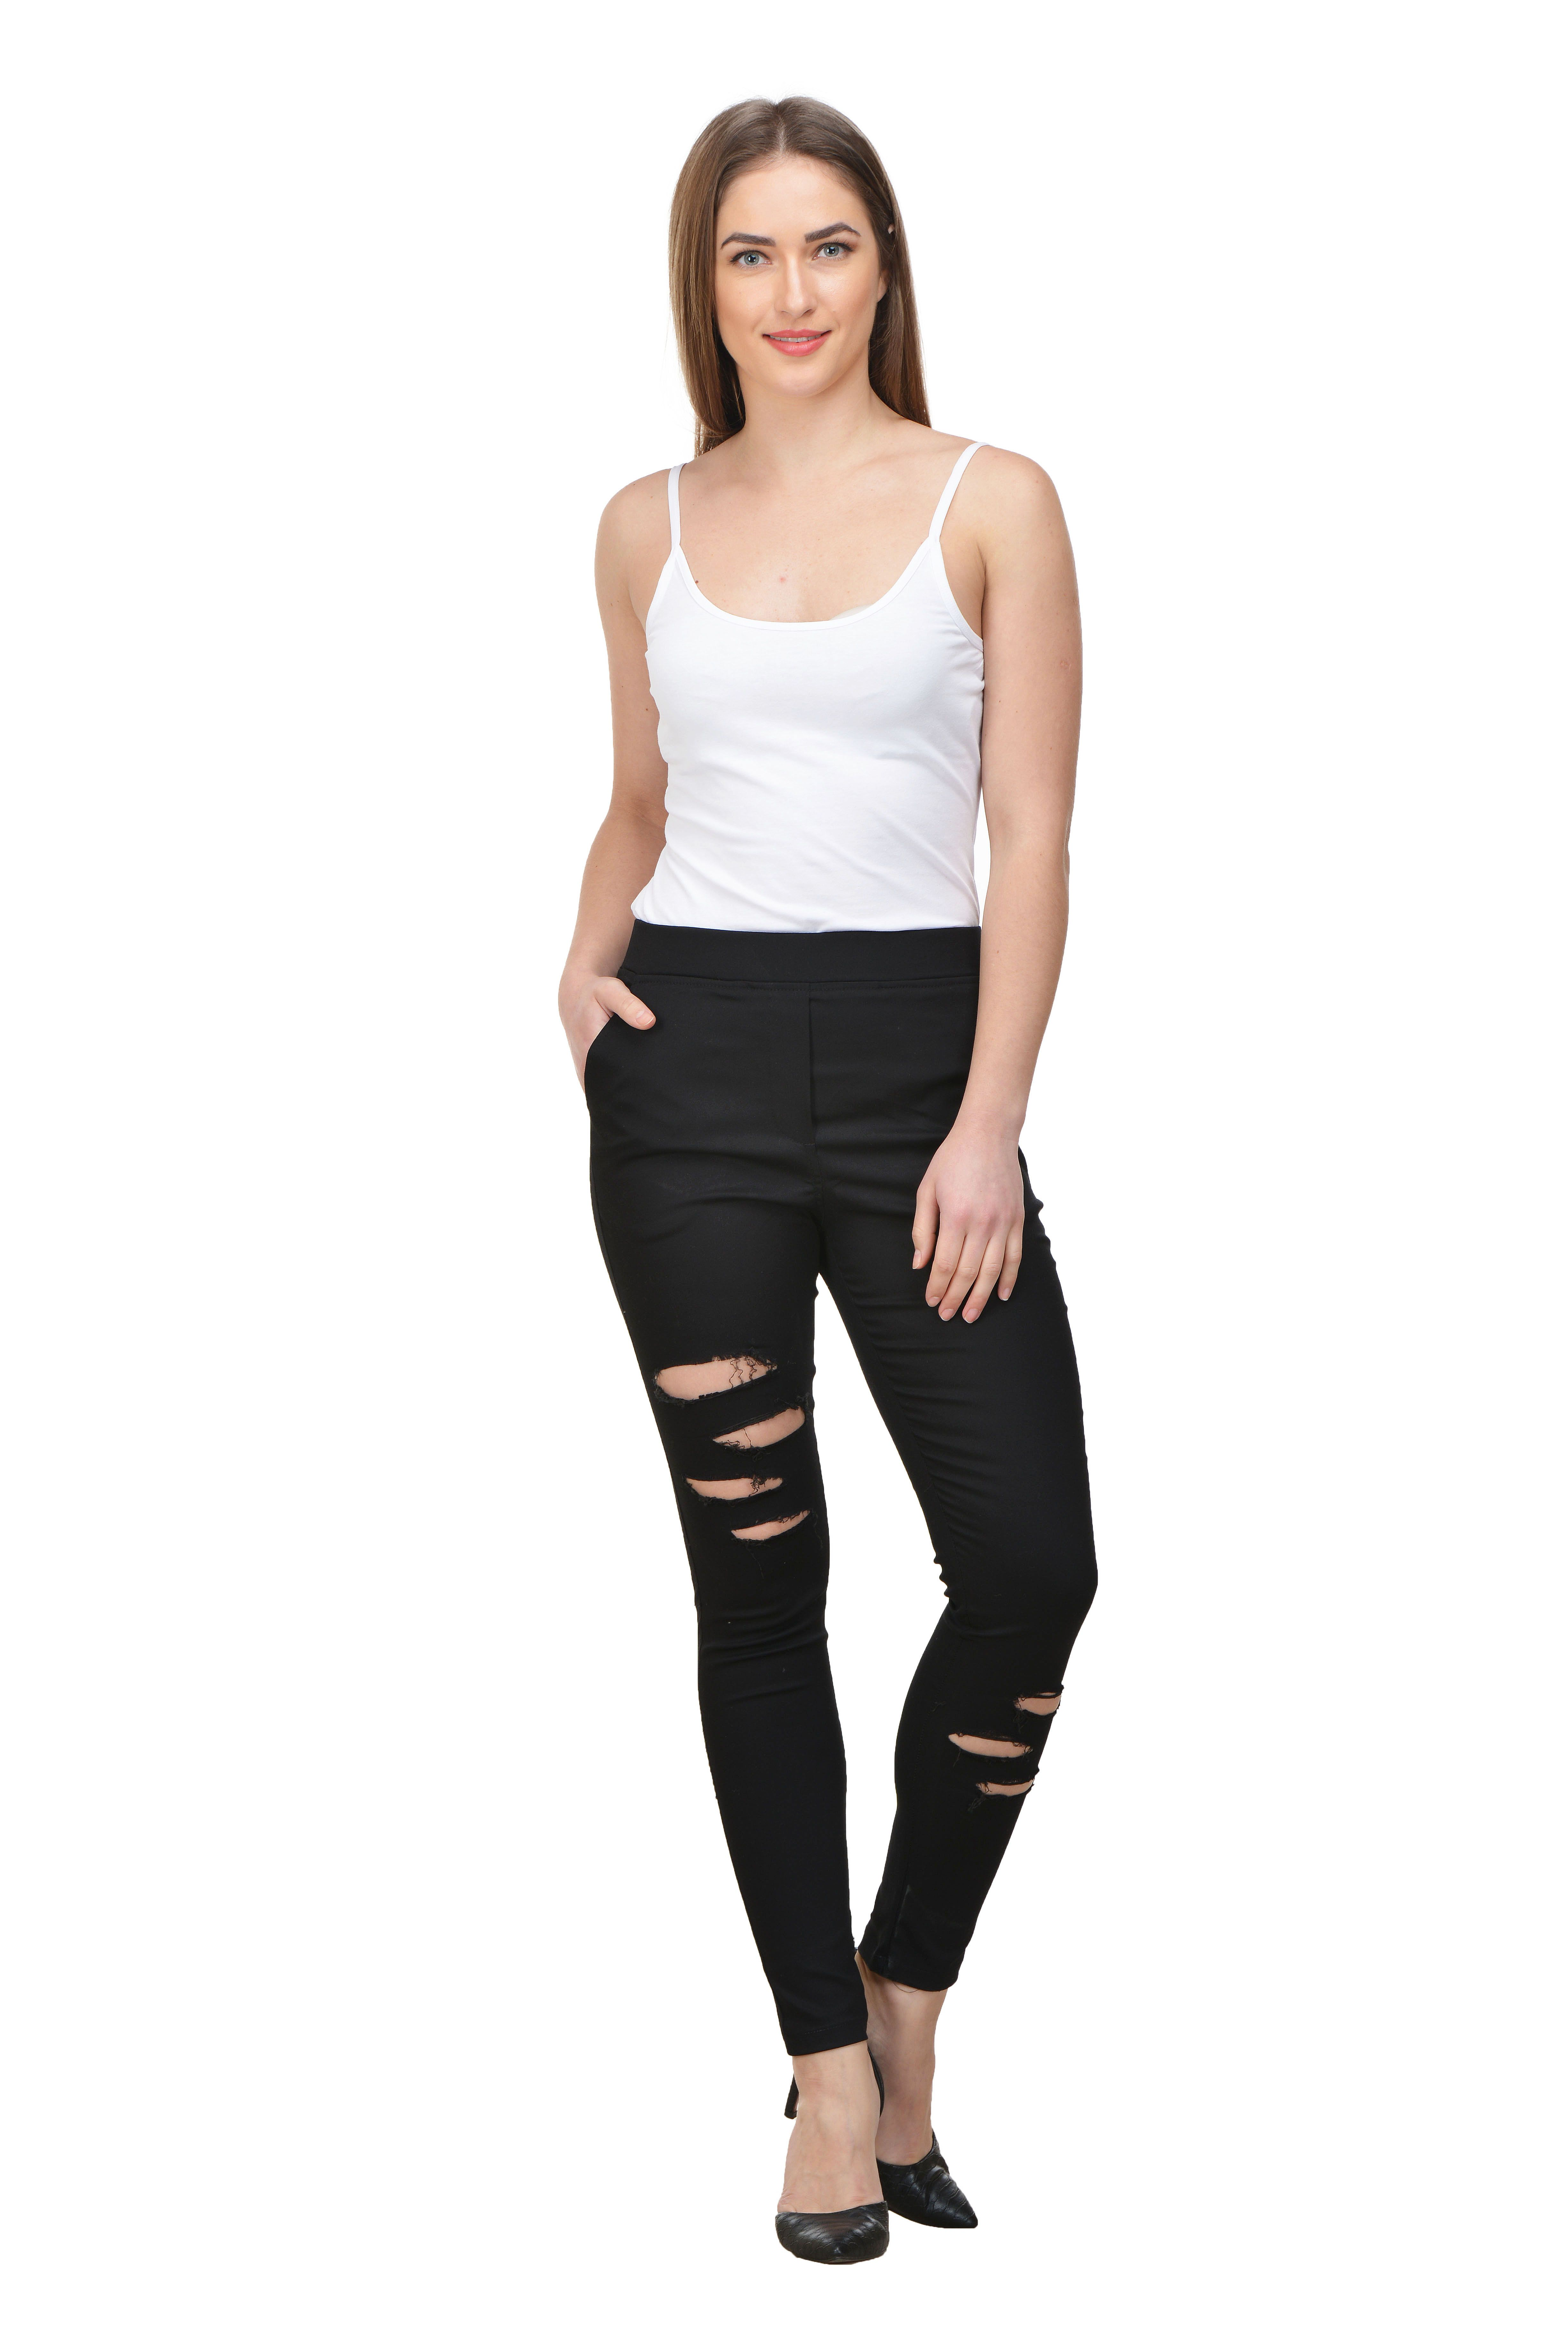 279d673d49199 ... Spandex Flat 30% Off on order above Rs 699/= #rippedjeans #ripped  #rippedjegging #trousers #onlineshopping #westernwear #fashion  #dealoftheday #jeggings